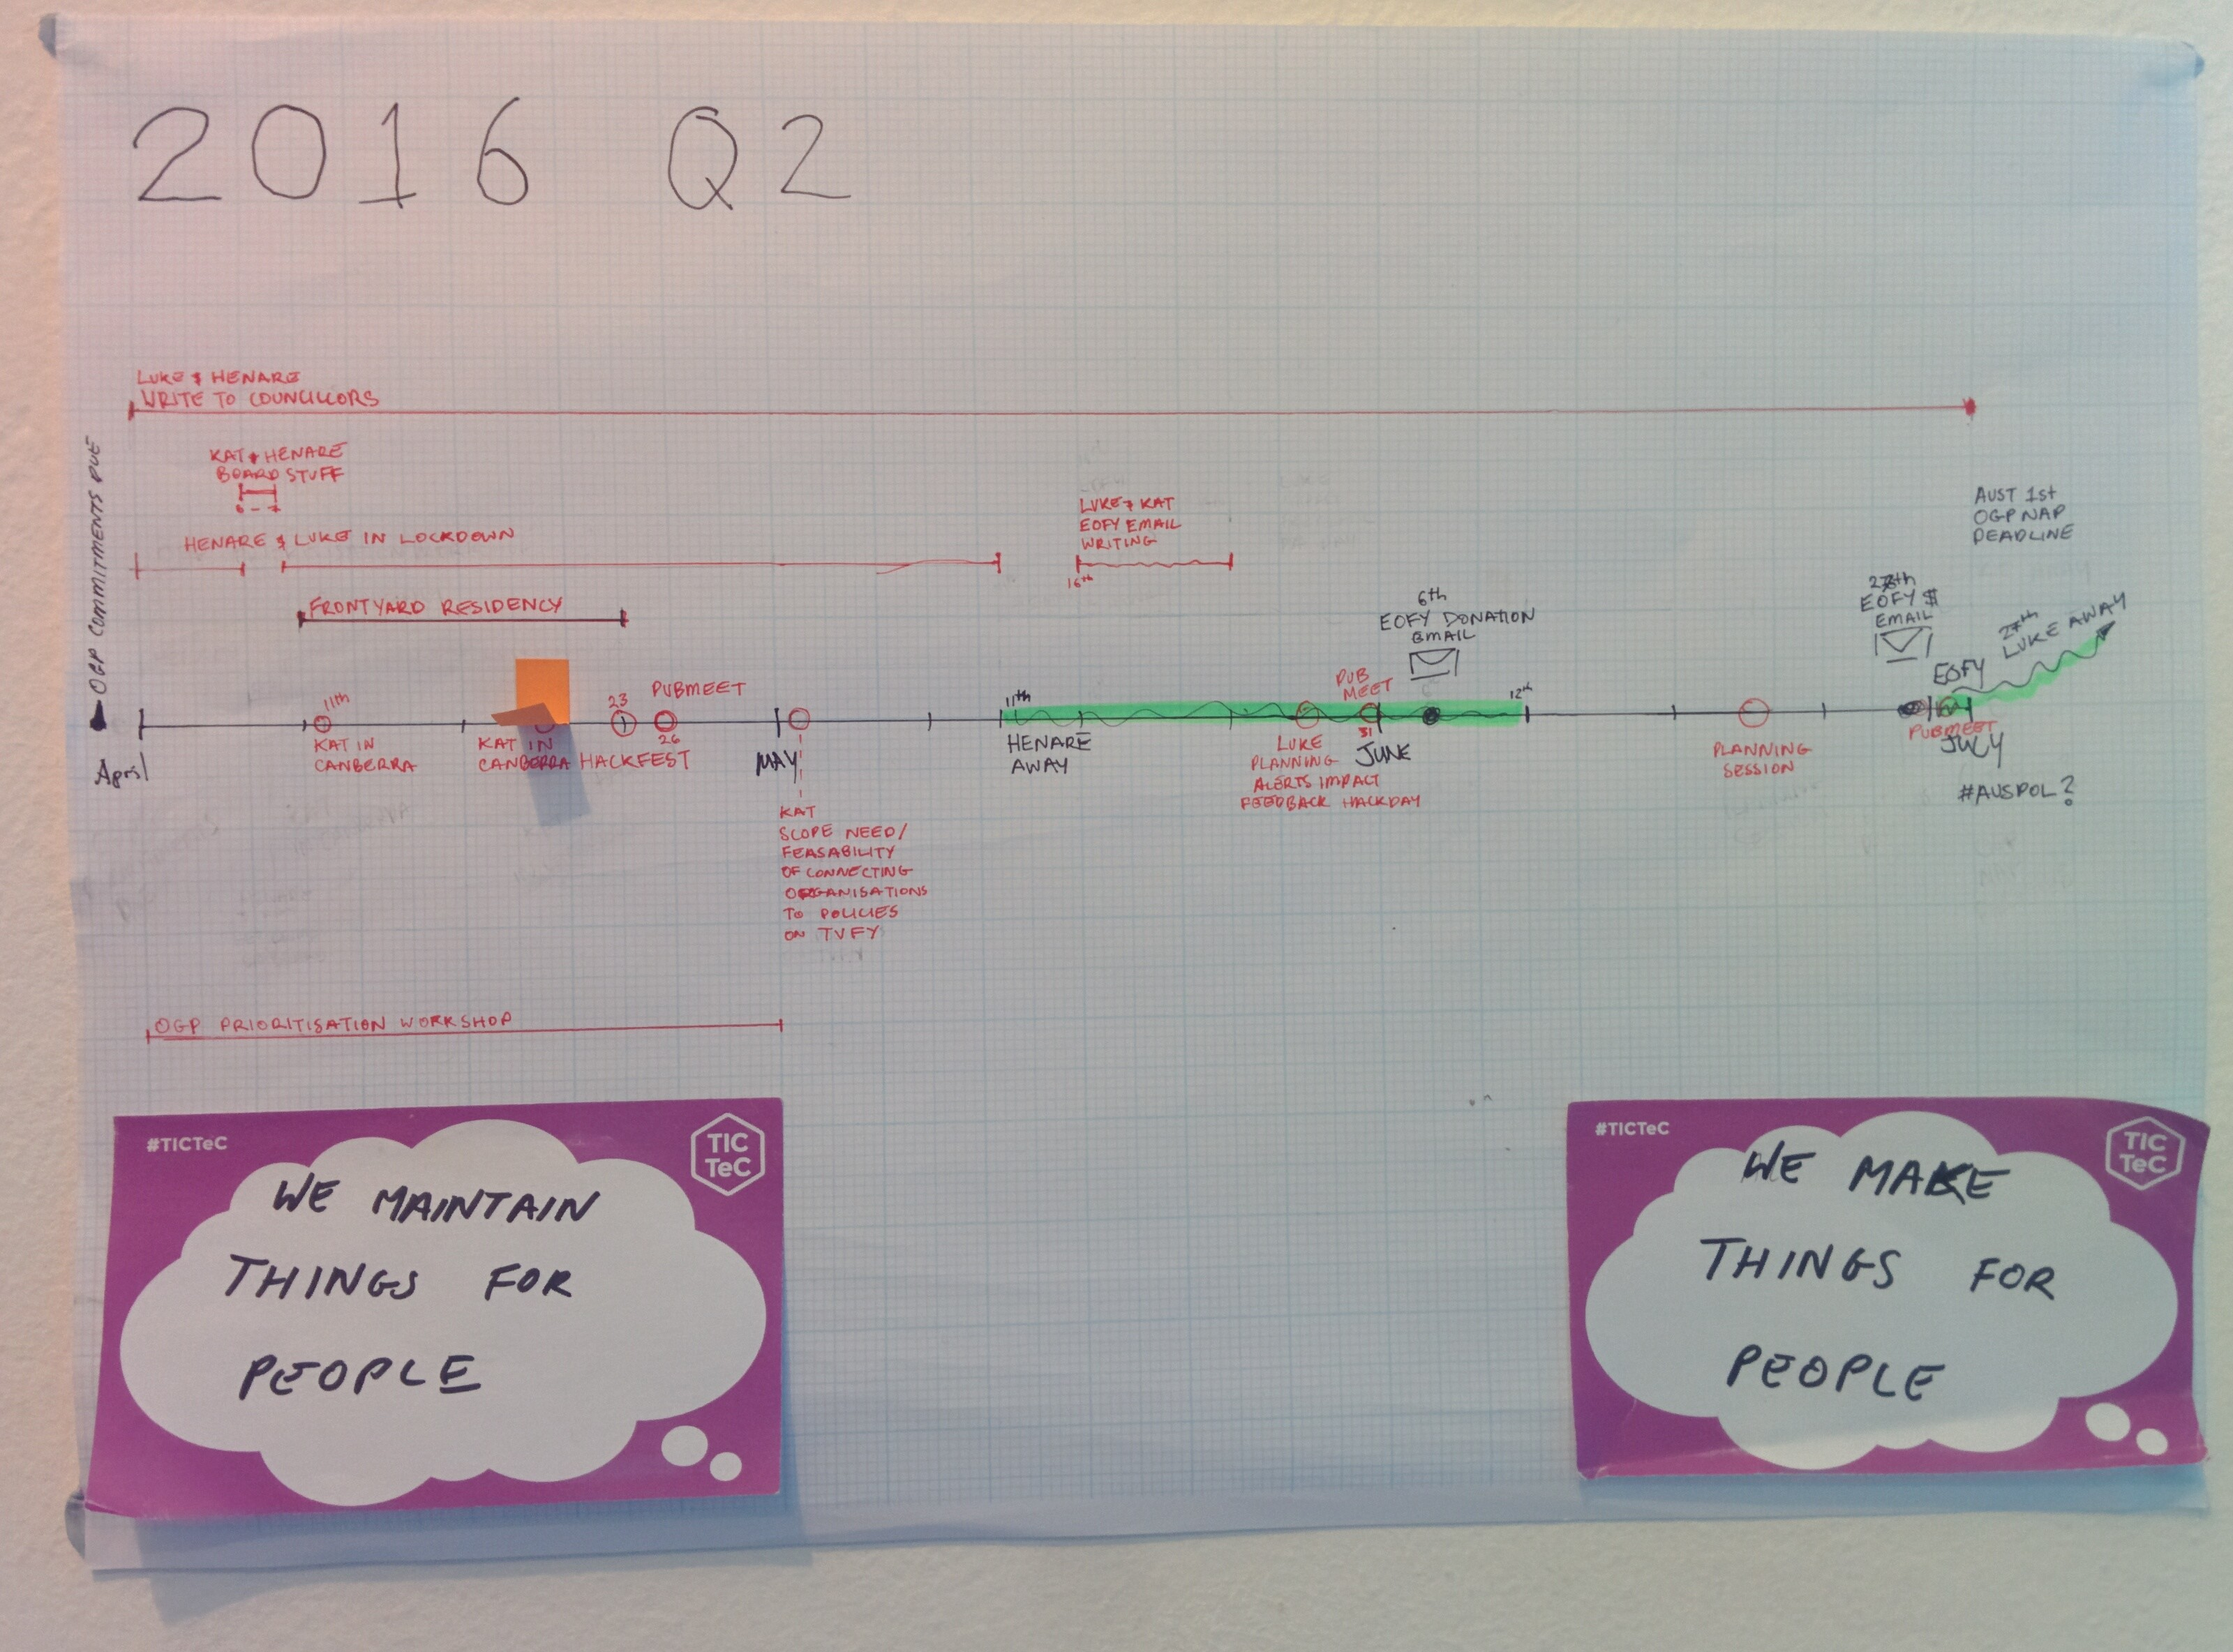 Photo of the timeline of our plan for Q2 2016.